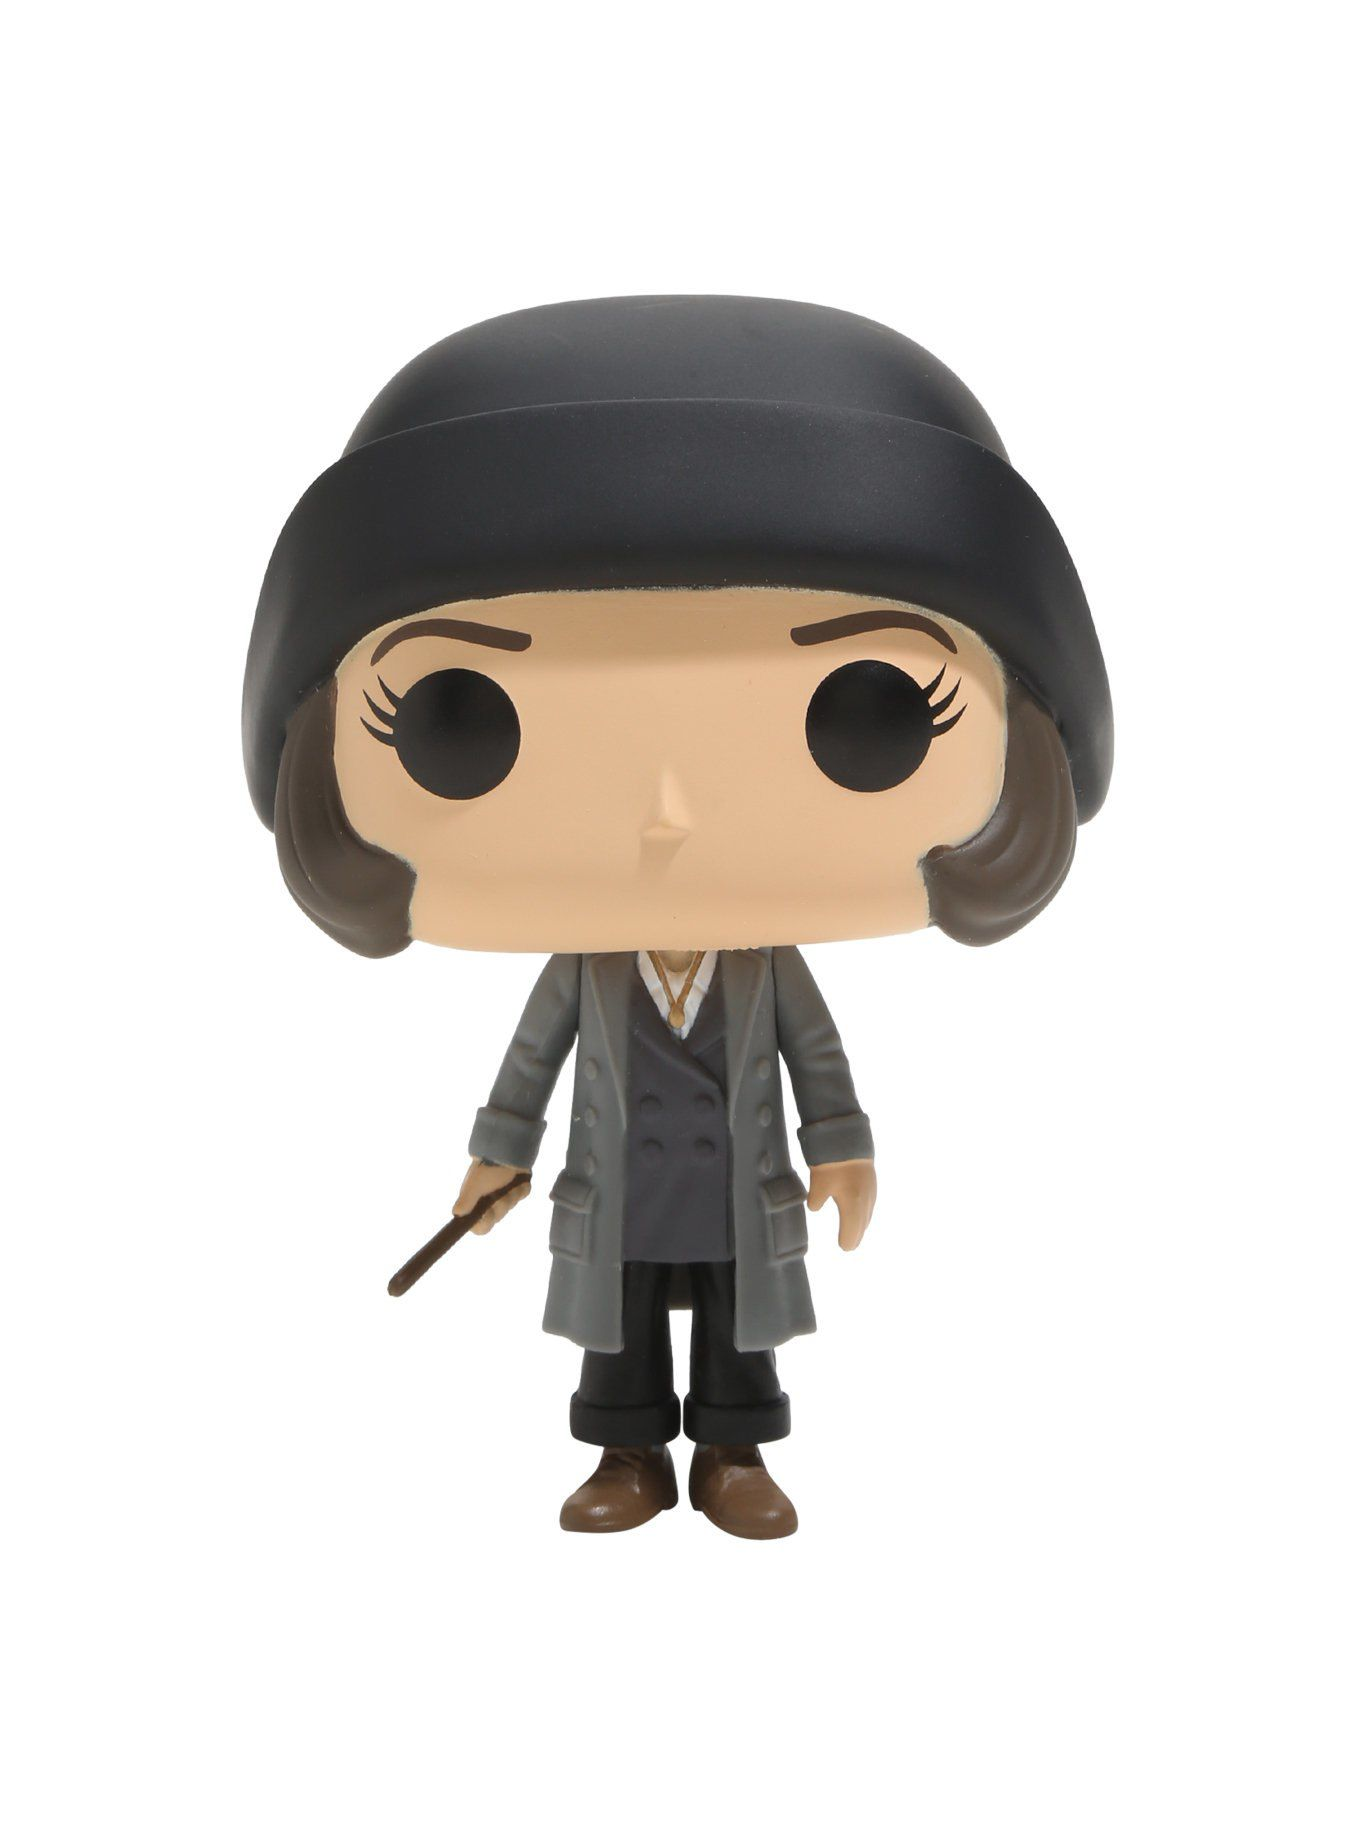 Tina Goldstein #04 - Fantastic Beasts and Where to Find Them ( Animais Fantásticos e Onde Habitam ) - Funko Pop!